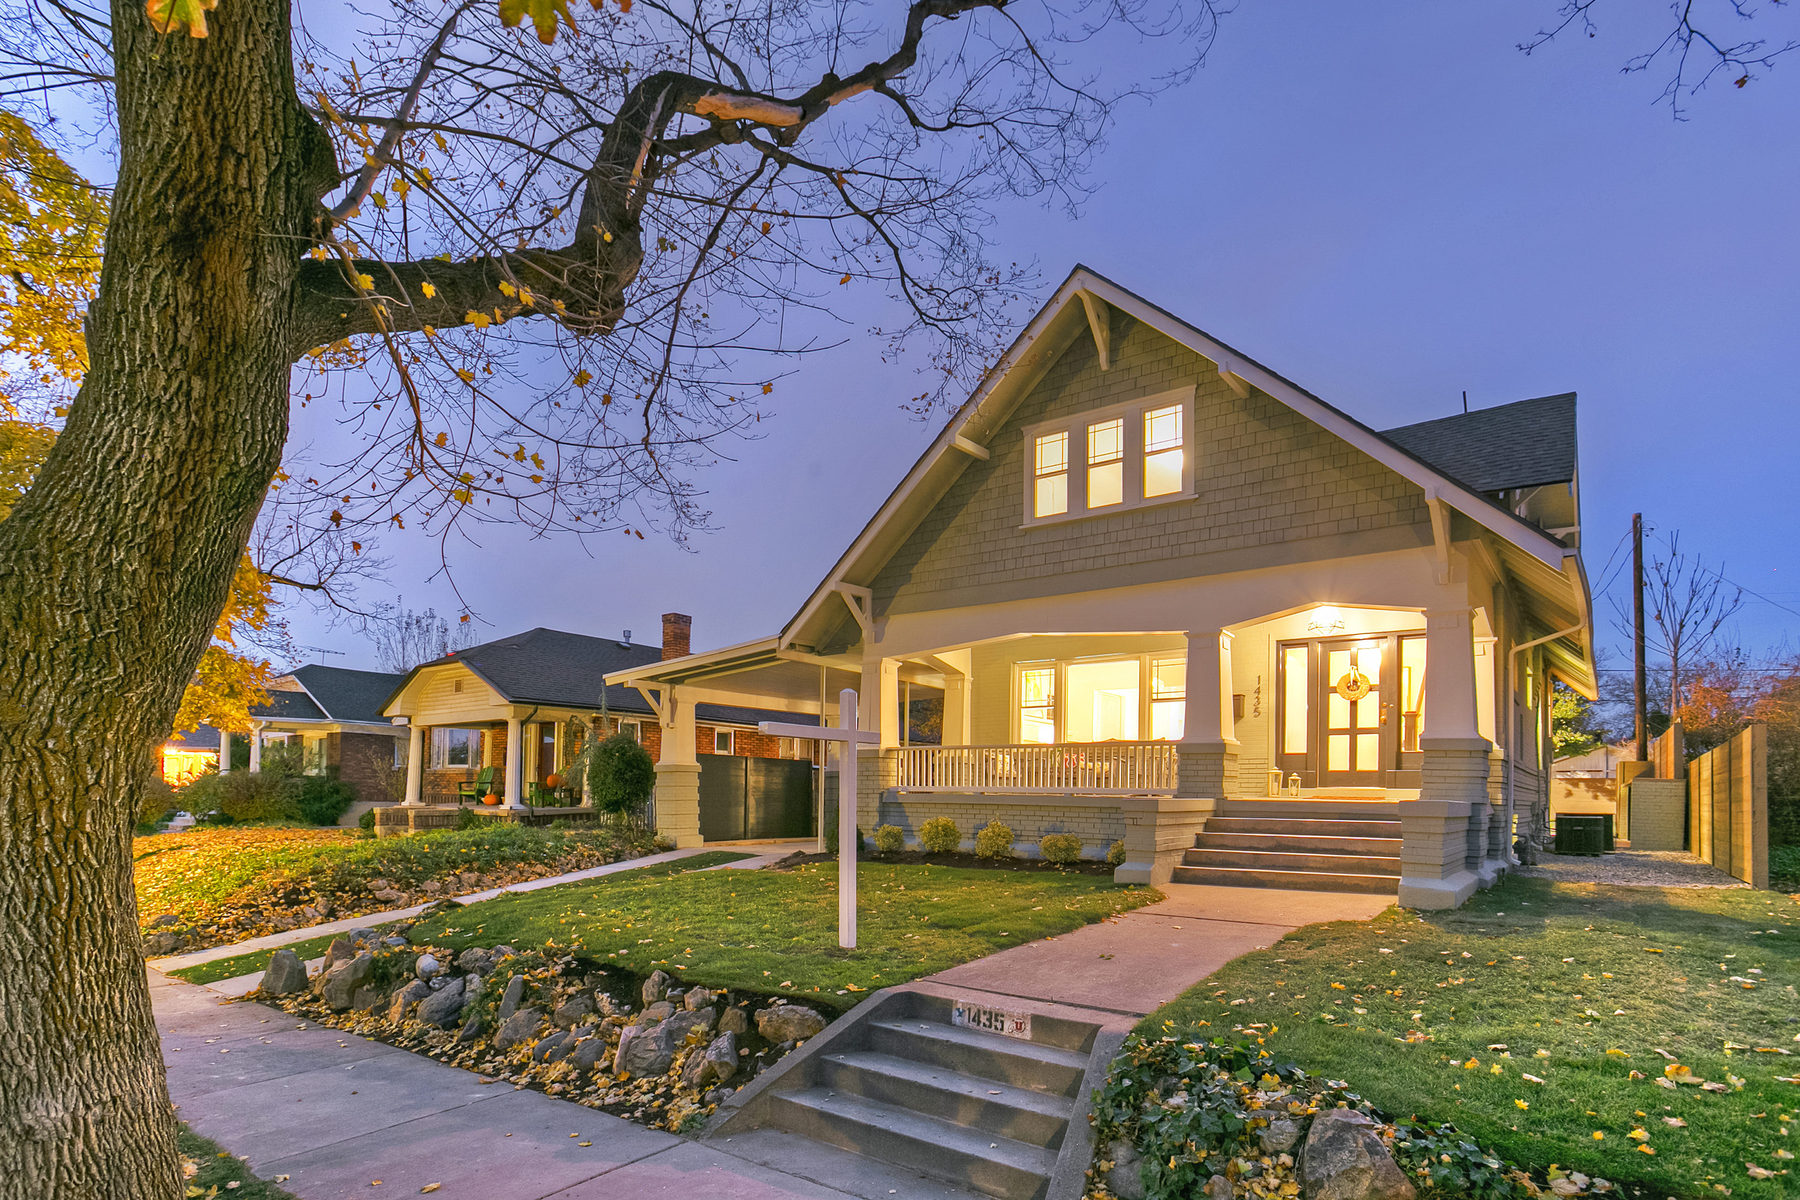 단독 가정 주택 용 매매 에 Meticulously Updated Bungalow 1435 E Logan Ave Salt Lake City, 유타 84105 미국